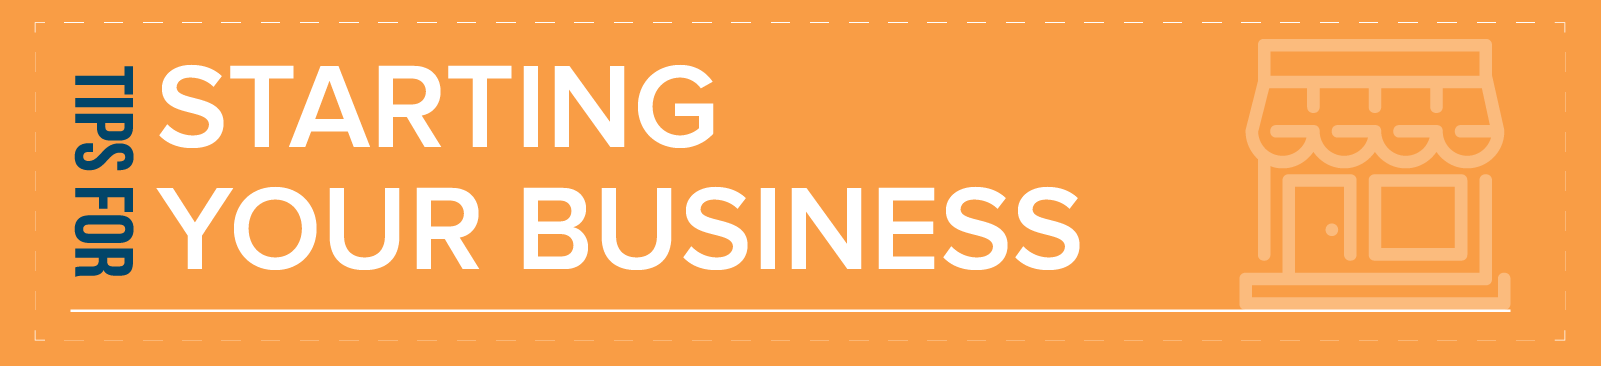 Deputy-30 Tips Real Business Owners Share for Opening a Successful Services Business-blog assets-04